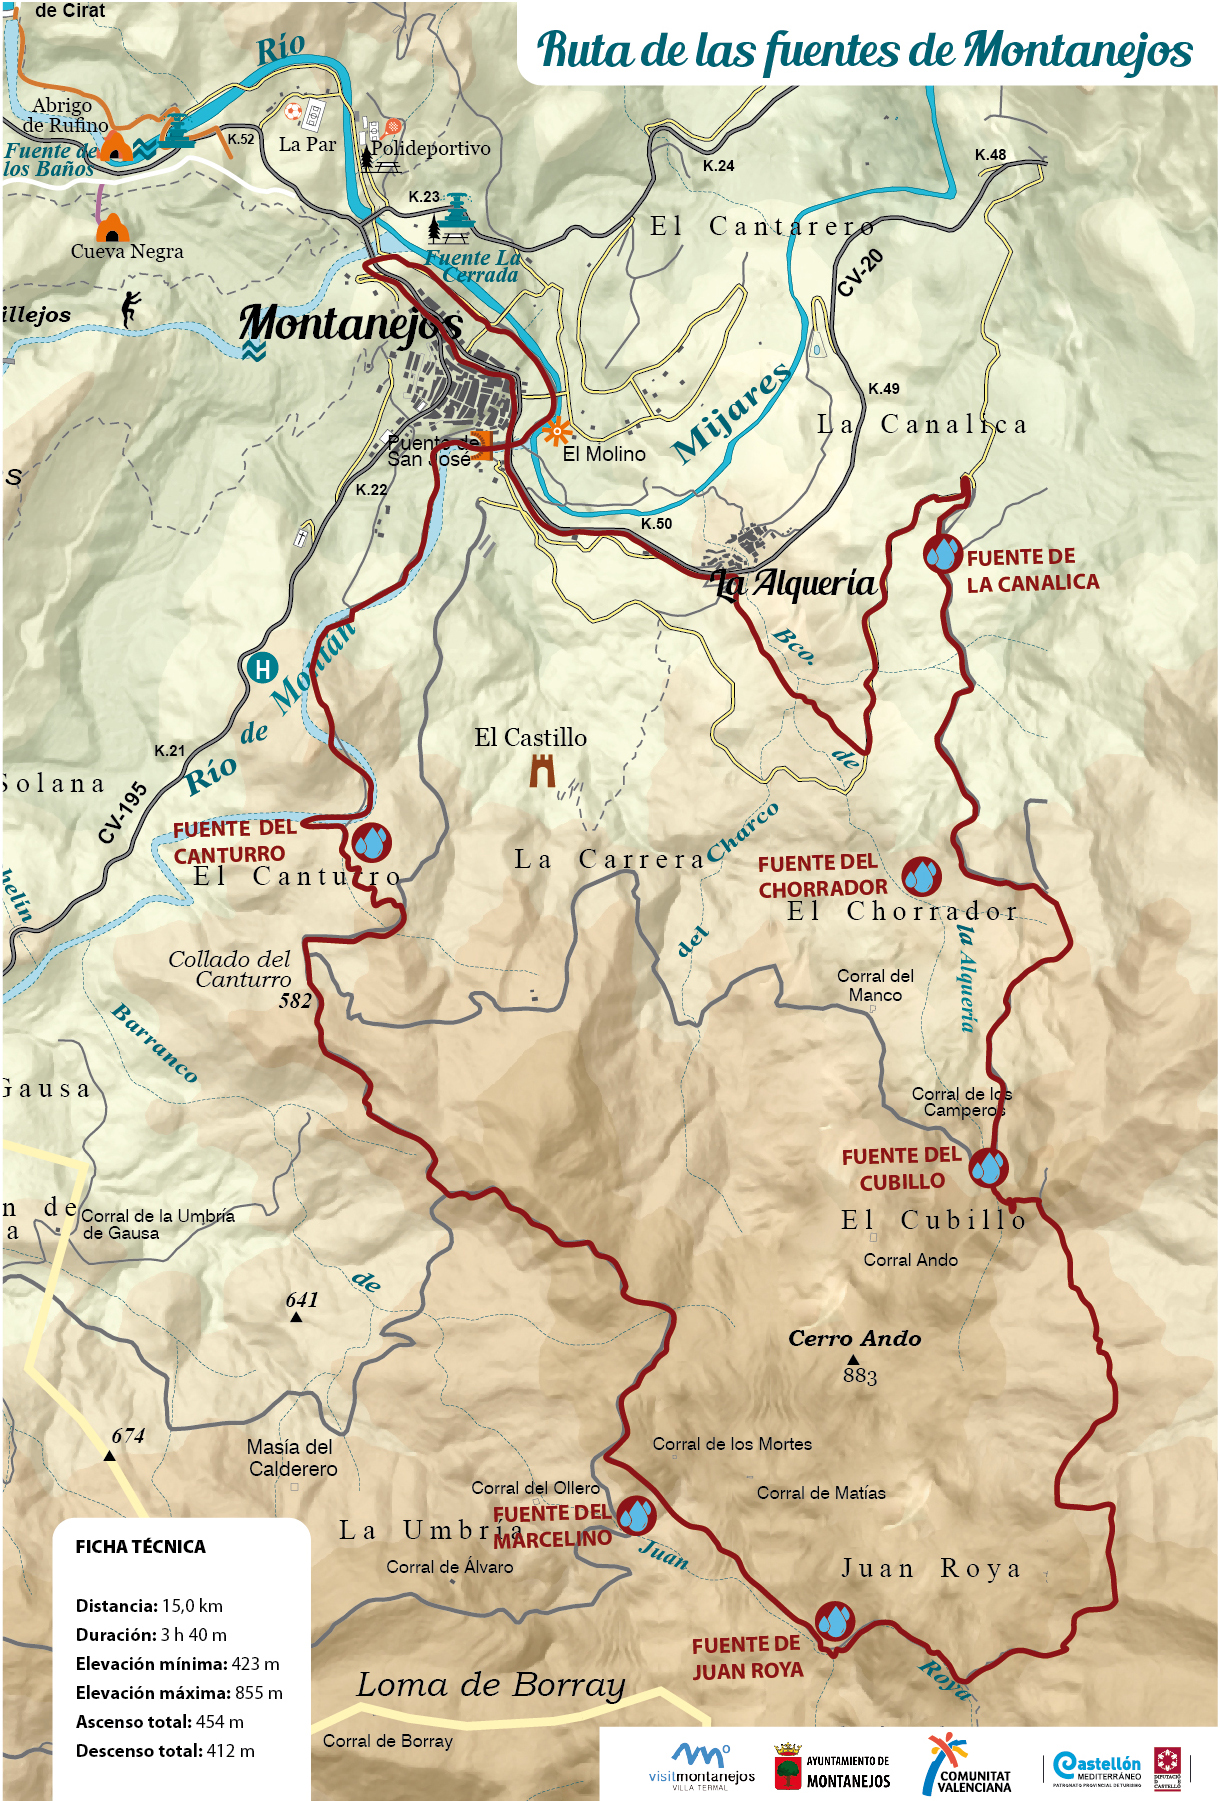 The trail of La Bojera